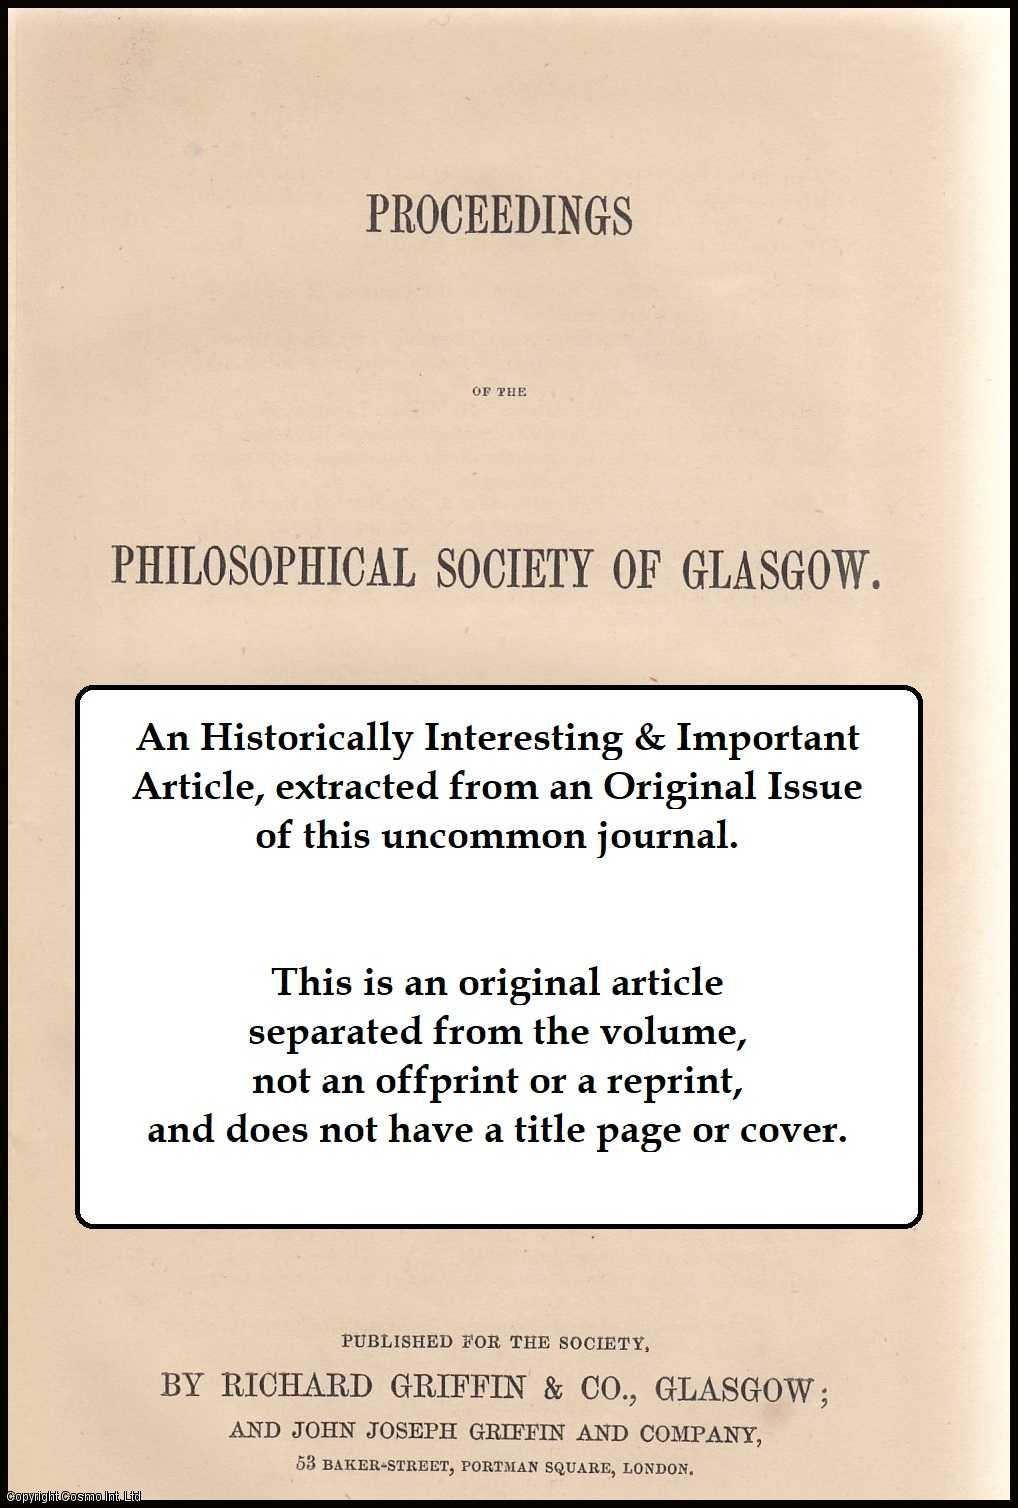 EDMUND J. MILLS & JOHN IMRIE - On the Relation of the Ash Tree to the Height of Plants. This is an original article from the Proceedings of the Glasgow Philosophical Society, 1900.